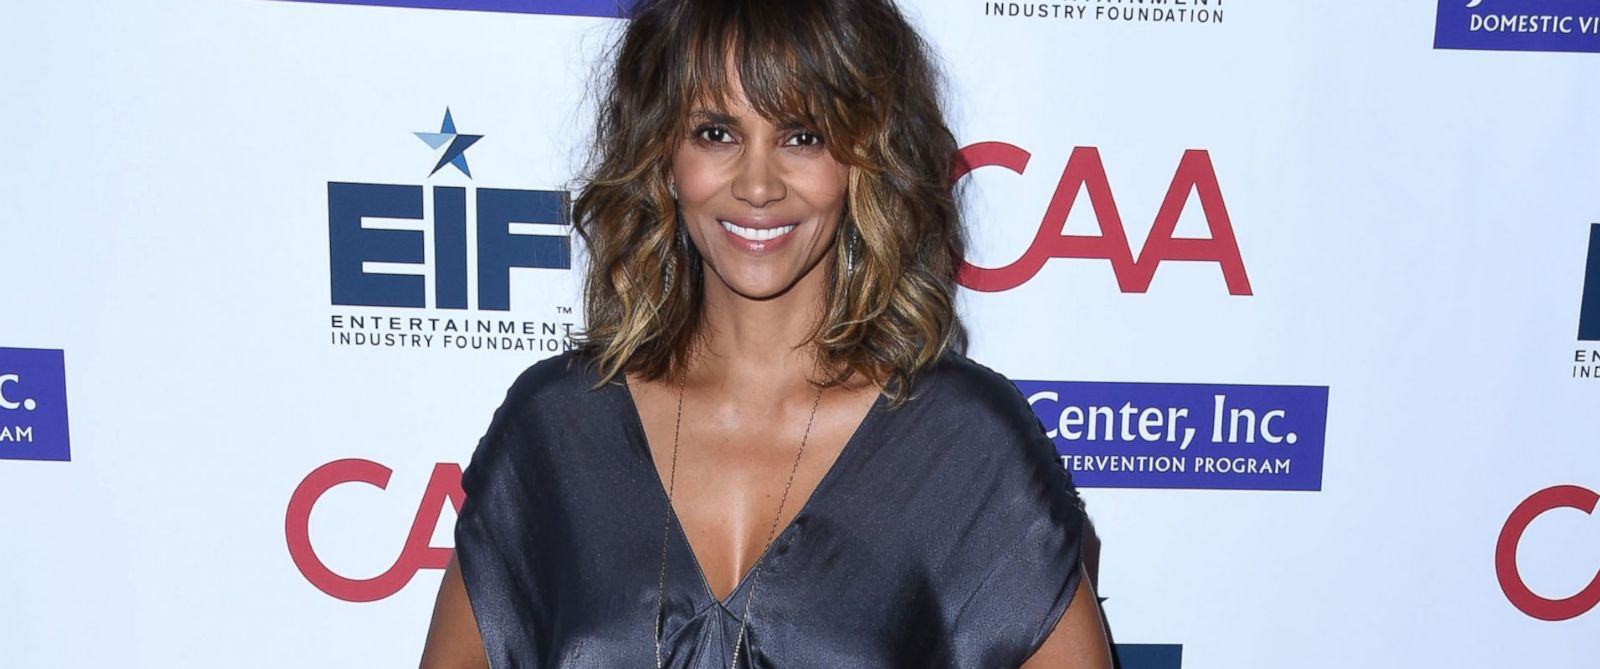 """PHOTO:Halle Berry arrives at the Entertainment Industry Foundations """"Imagine"""" Benefit Fundraiser, Nov. 4, 2015, in Beverly Hills, Calif."""